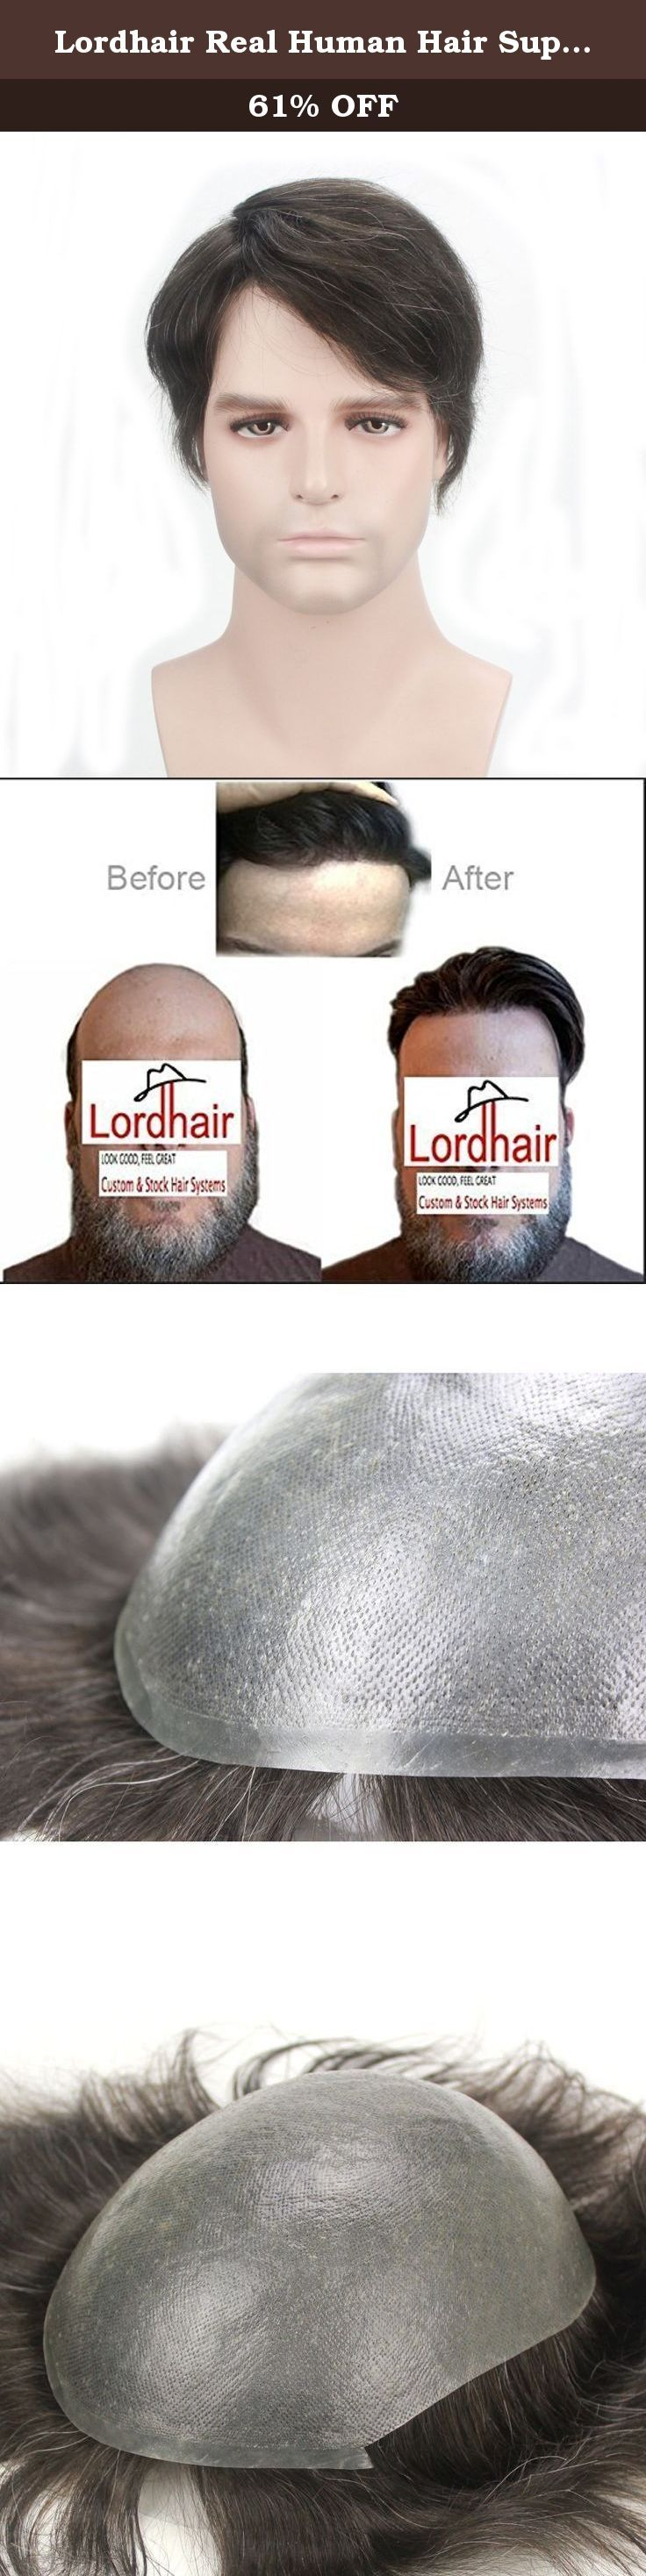 "Lordhair Real Human Hair Super Thin Skin Men's Toupee V-looped Hair Color 1B10#. Lordhair Real Human Hair Super Thin Skin Men's Toupee Thank you very much for shopping with Lordhair. Lordhair Wigs - Look good, feel great! FAQ: 1. Default Cap Size is 8""X10""Cap 2. The hair could be cut and styled according to your choice. 3.HAIR Type:human hair,(HUMAN HAIR will show white smoke while burning and will turn to ASH; Synthetic hair will show black smoke and will be a sticky ball after burning)..."